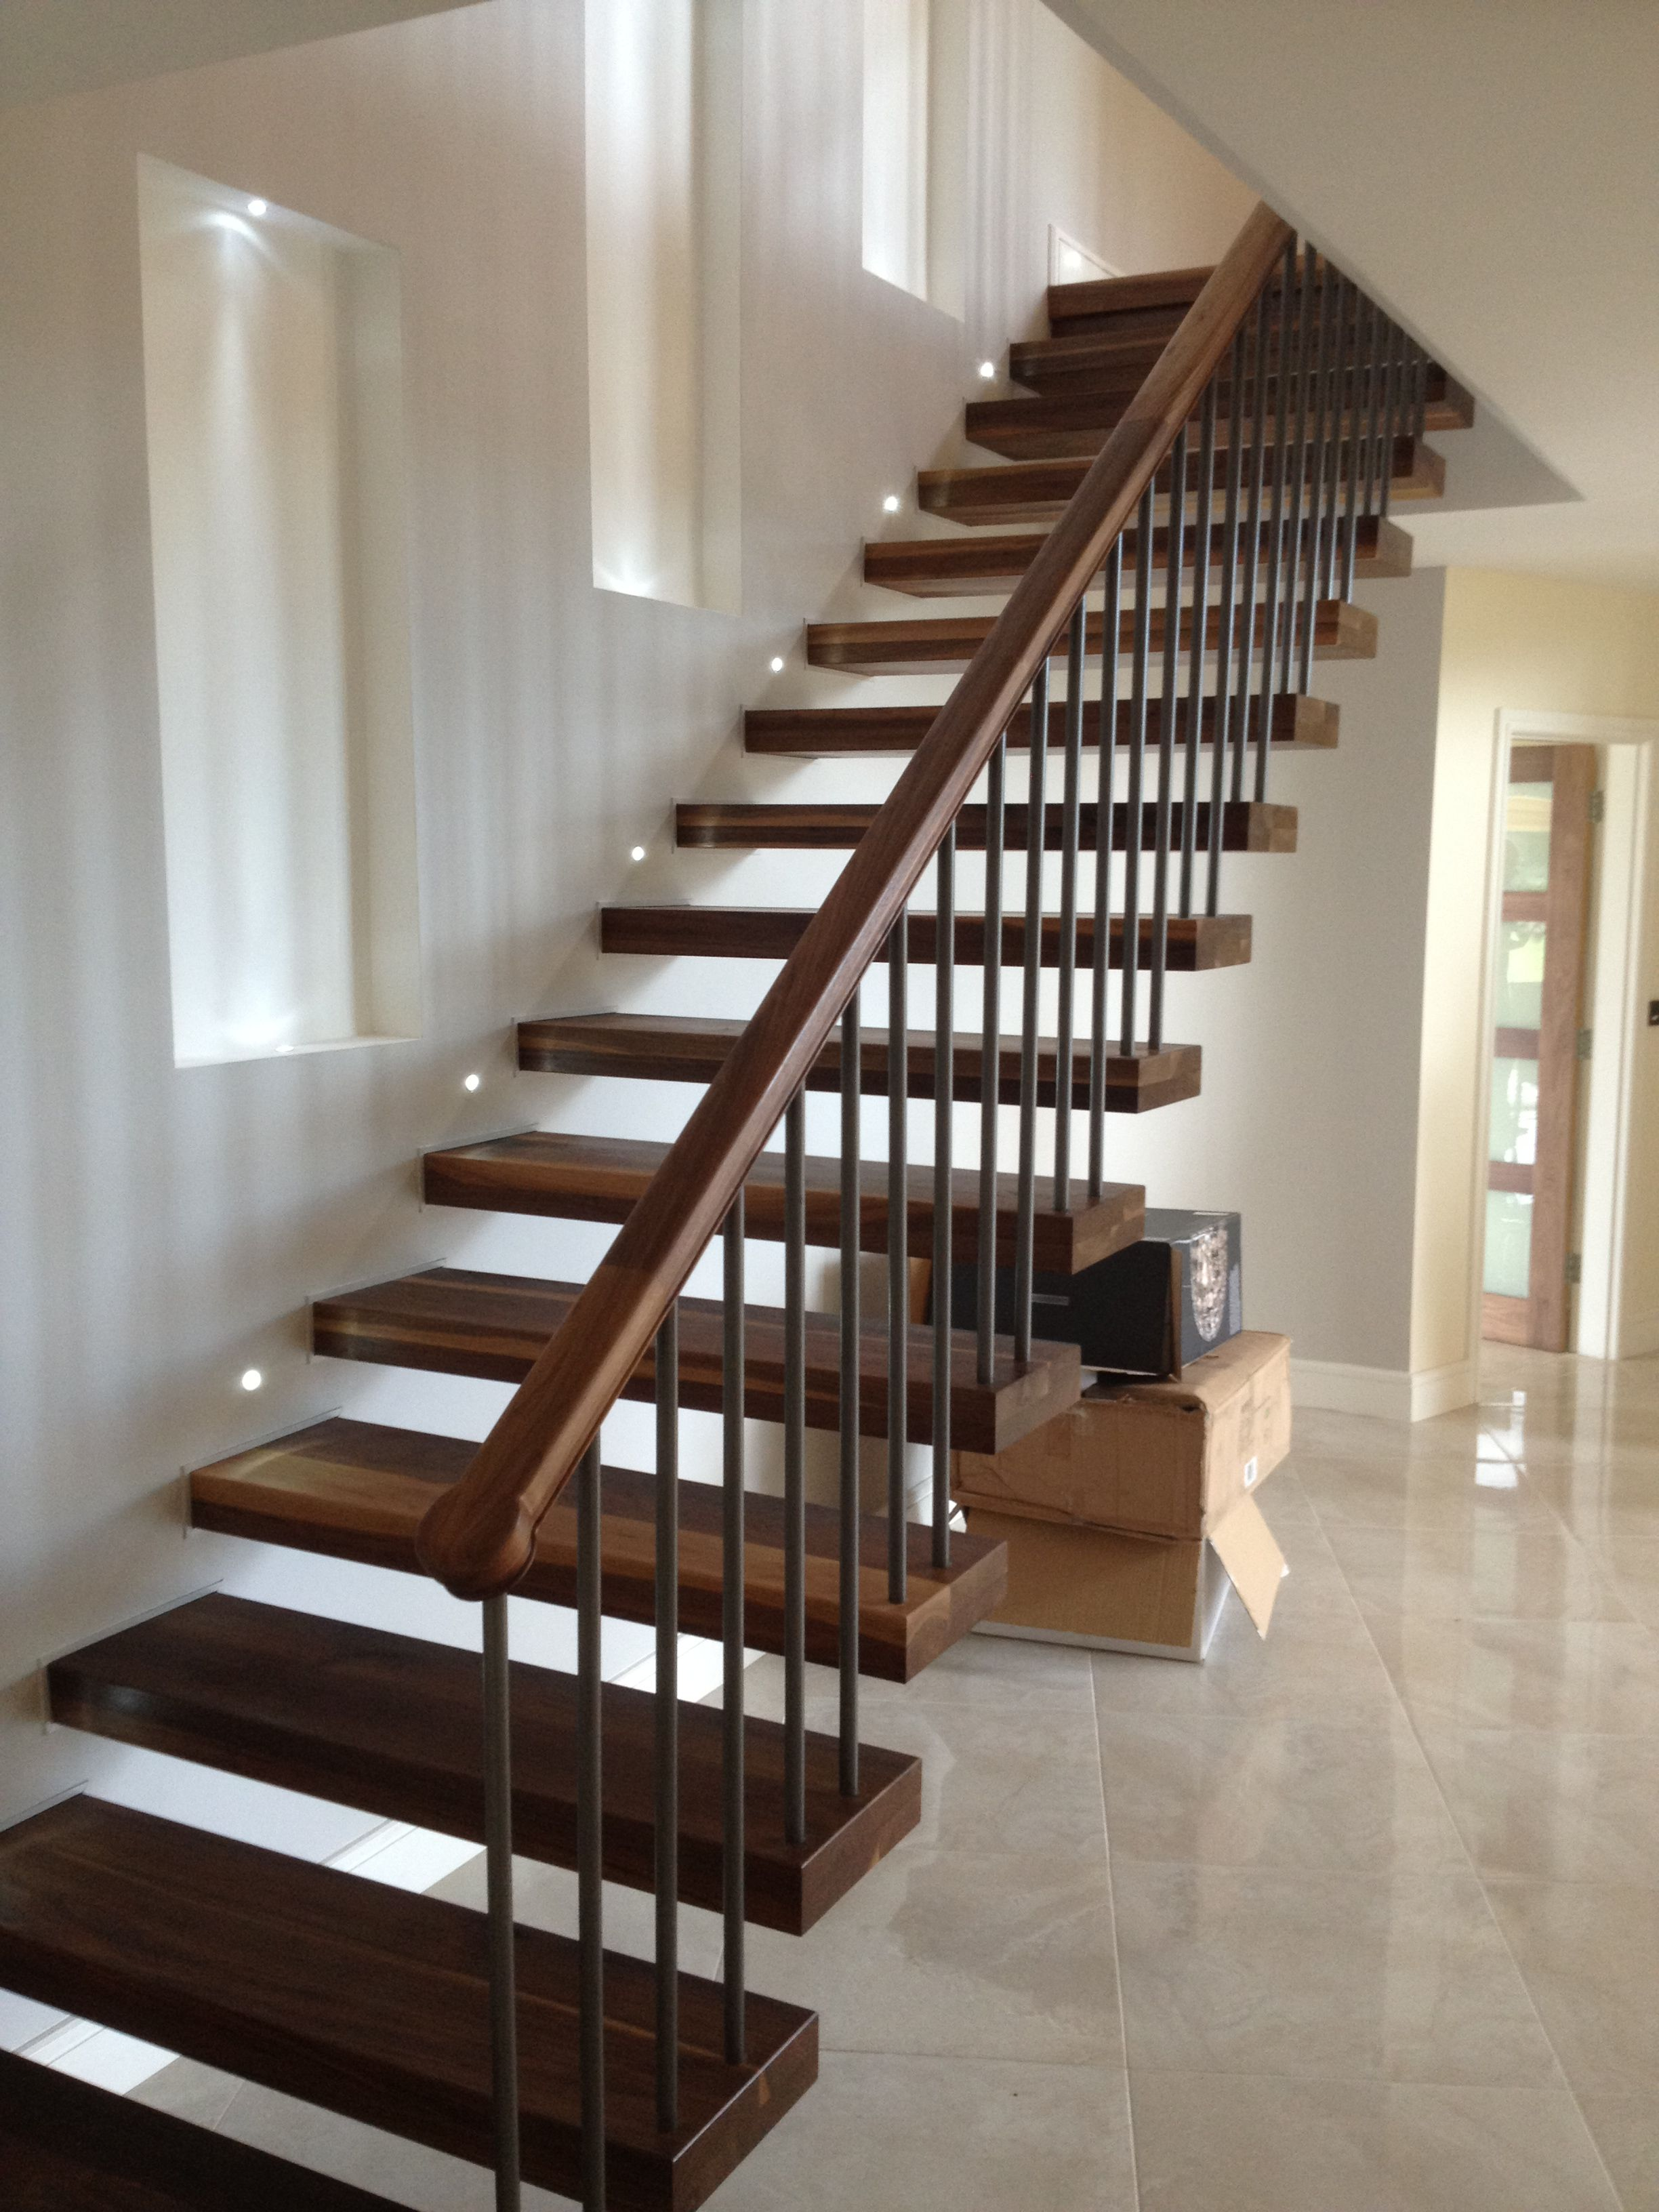 Living room stair railing ideas indoor handrail home depot pertaining to wood stair railing kit the stylish wood stair railing kit